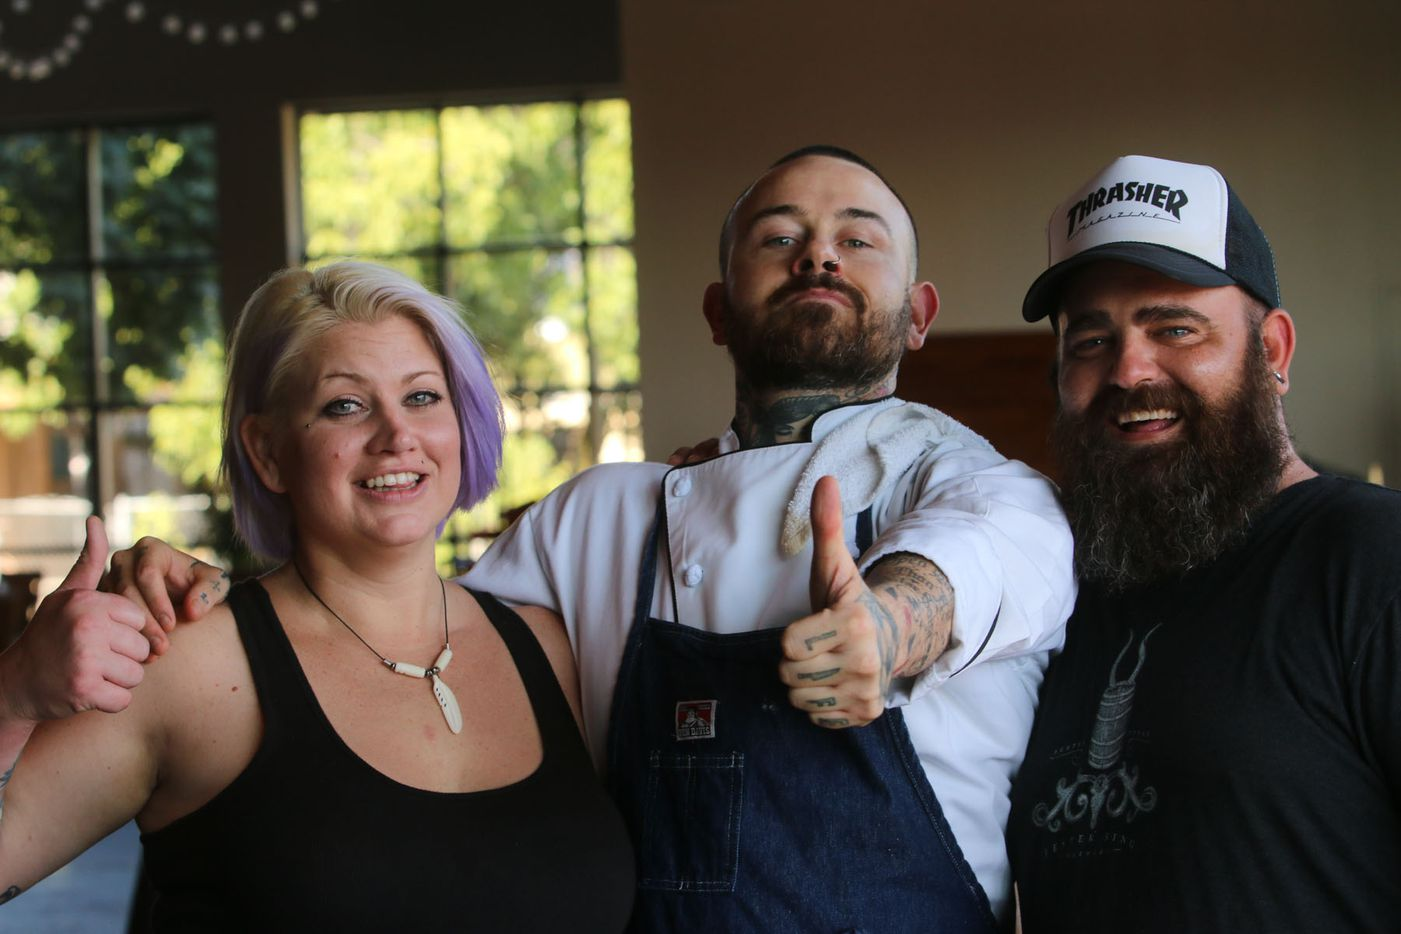 Chef Justin Box (center) with Michelle Carrow and David Reynolds at Box's summer pop up dinner Summer Shenanigans at 3015 in Trinity Groves on July 26,2015.